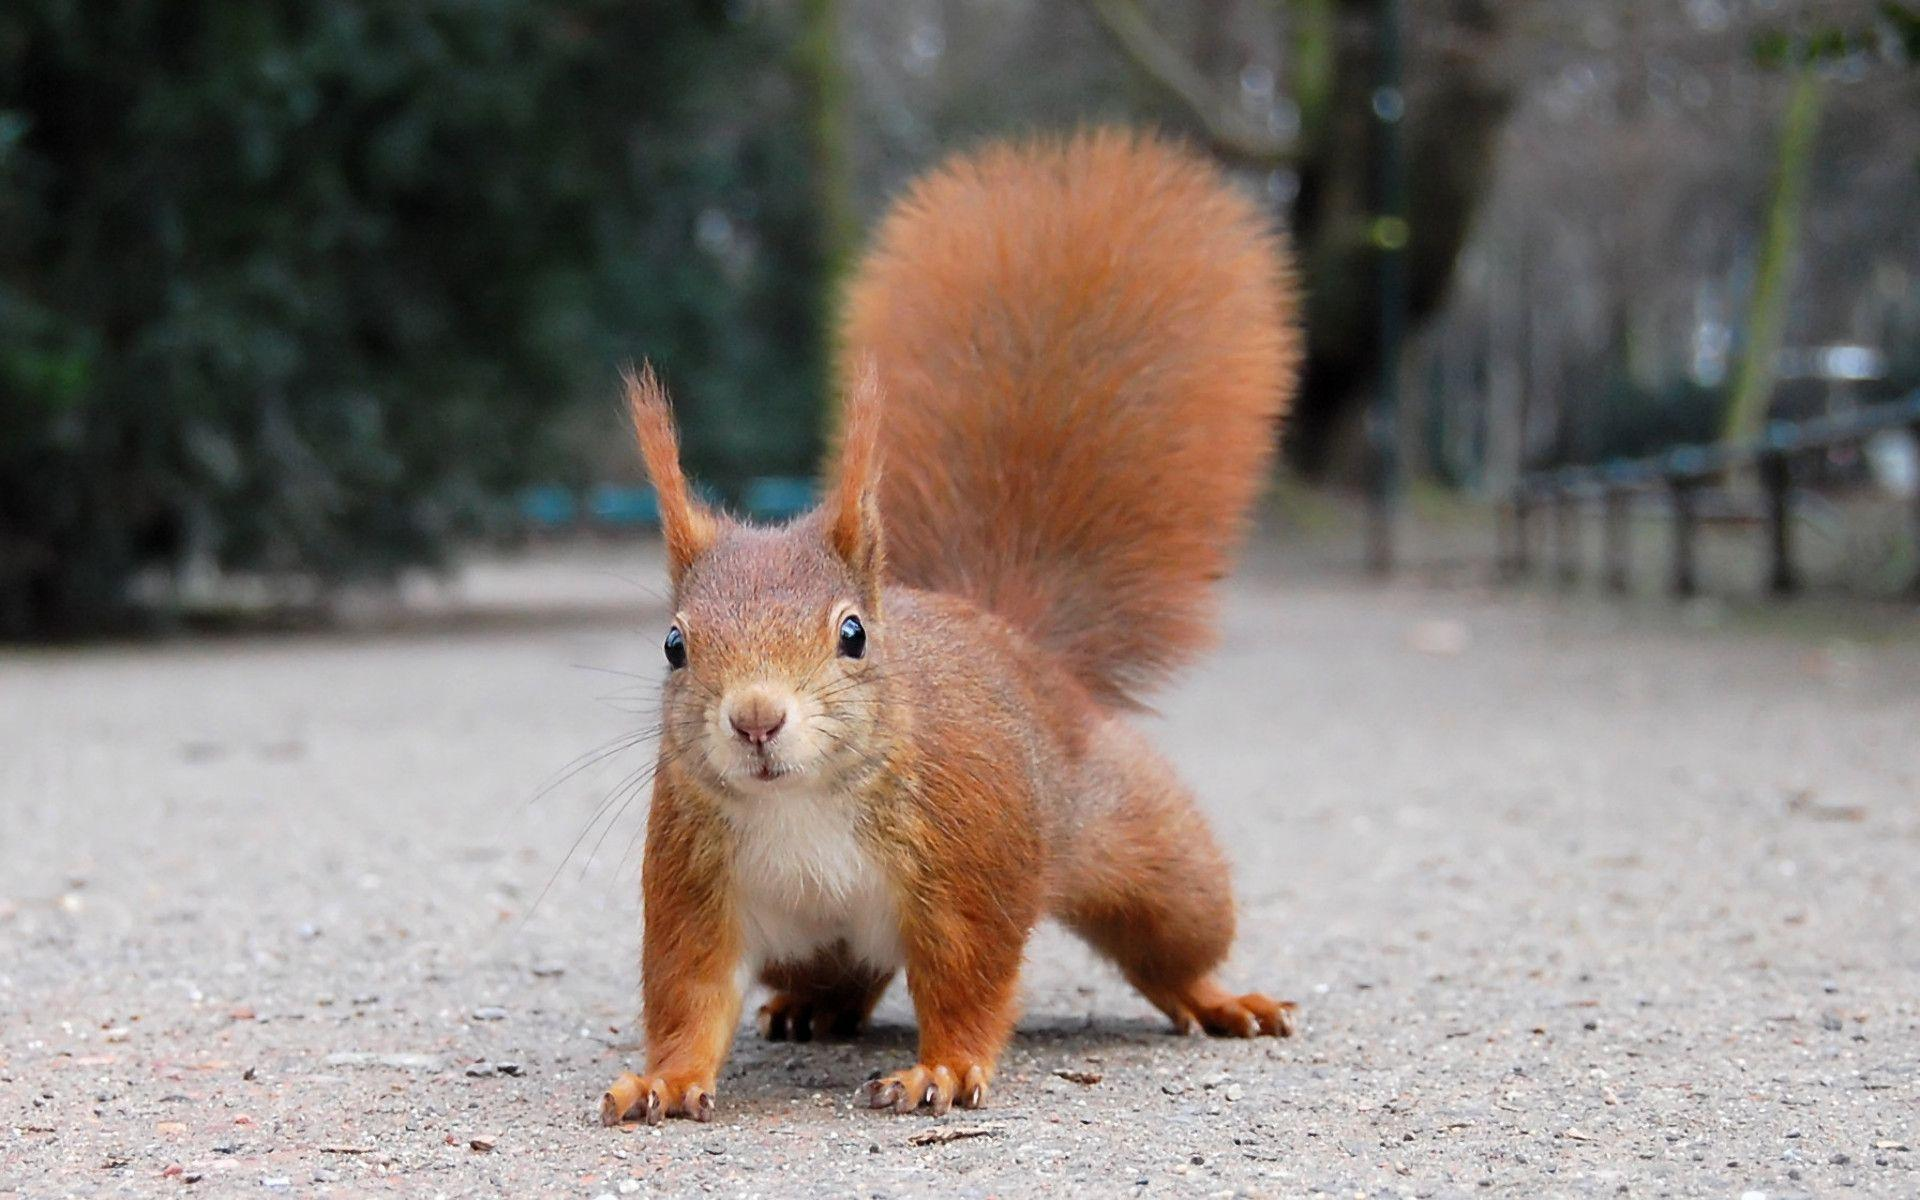 Funny Squirrel Wallpapers 39782 in Animals